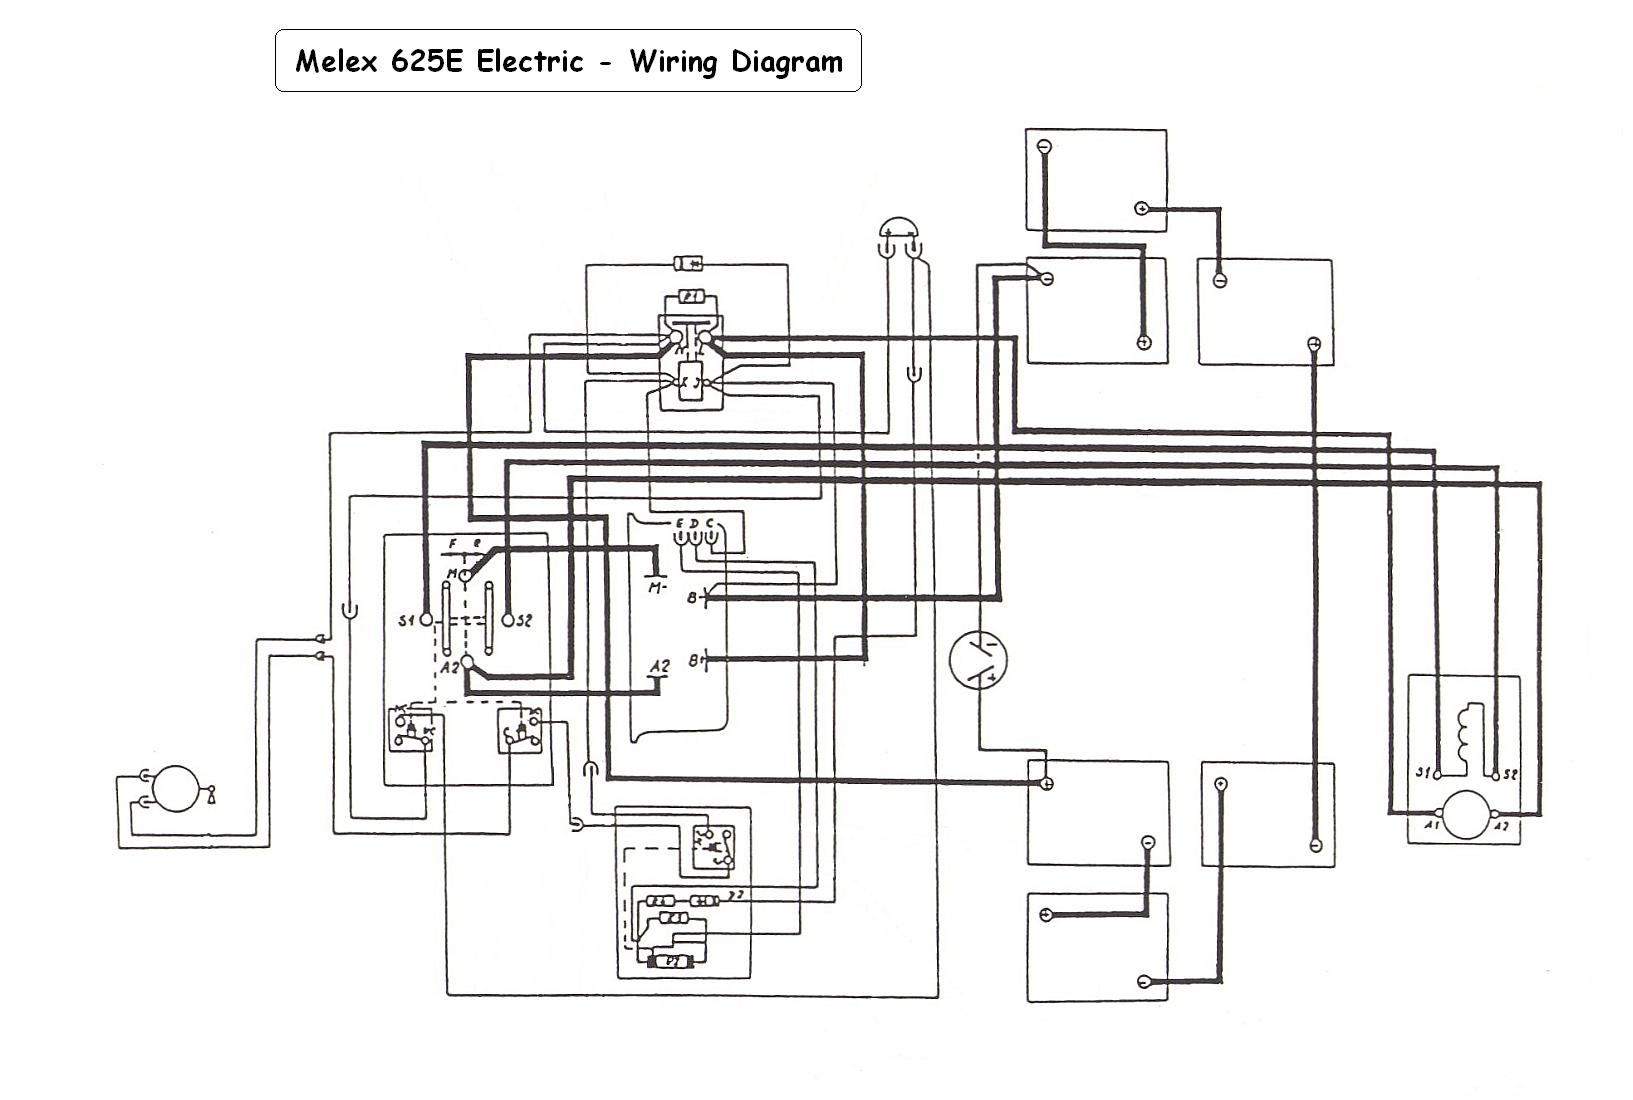 VW Tech Article Steering Wheel Horn Diagrams together with Freightliner Columbia Mb V48542 Service Manual together with Dd13 Engine Diagram together with Freightliner Stereo Wiring Harness as well Gallery. on columbia wiring diagrams